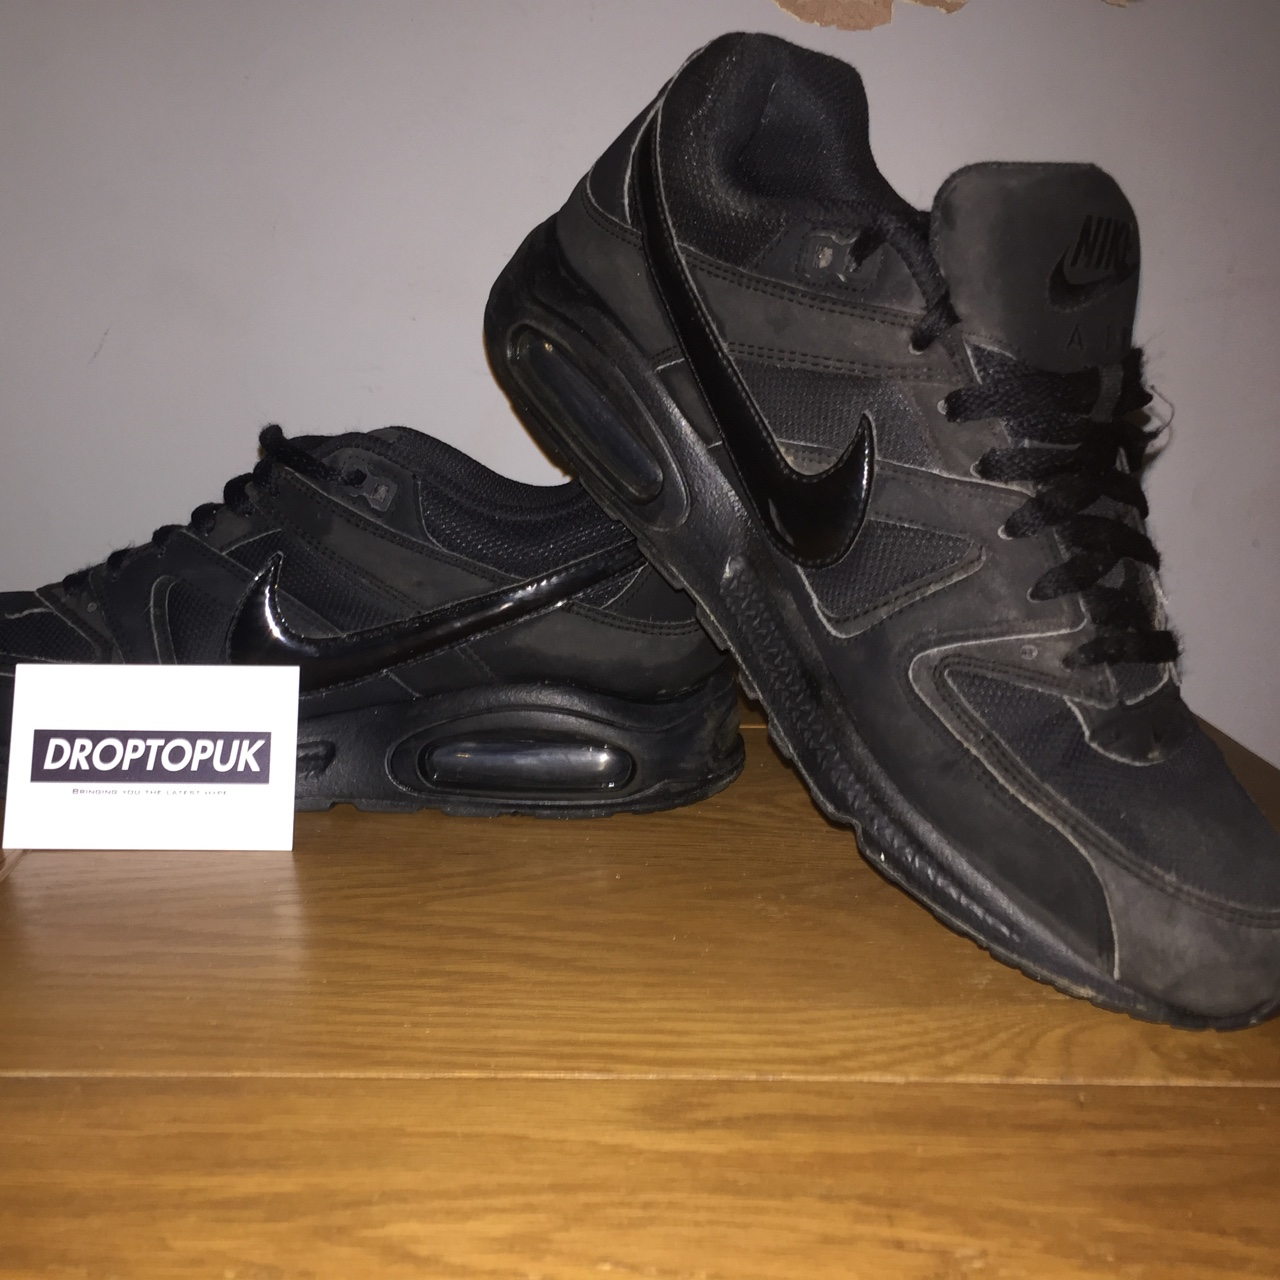 competitive price 4875f 3d7f8 Nike air max 90 triple black size 9 UK men's.... - Depop